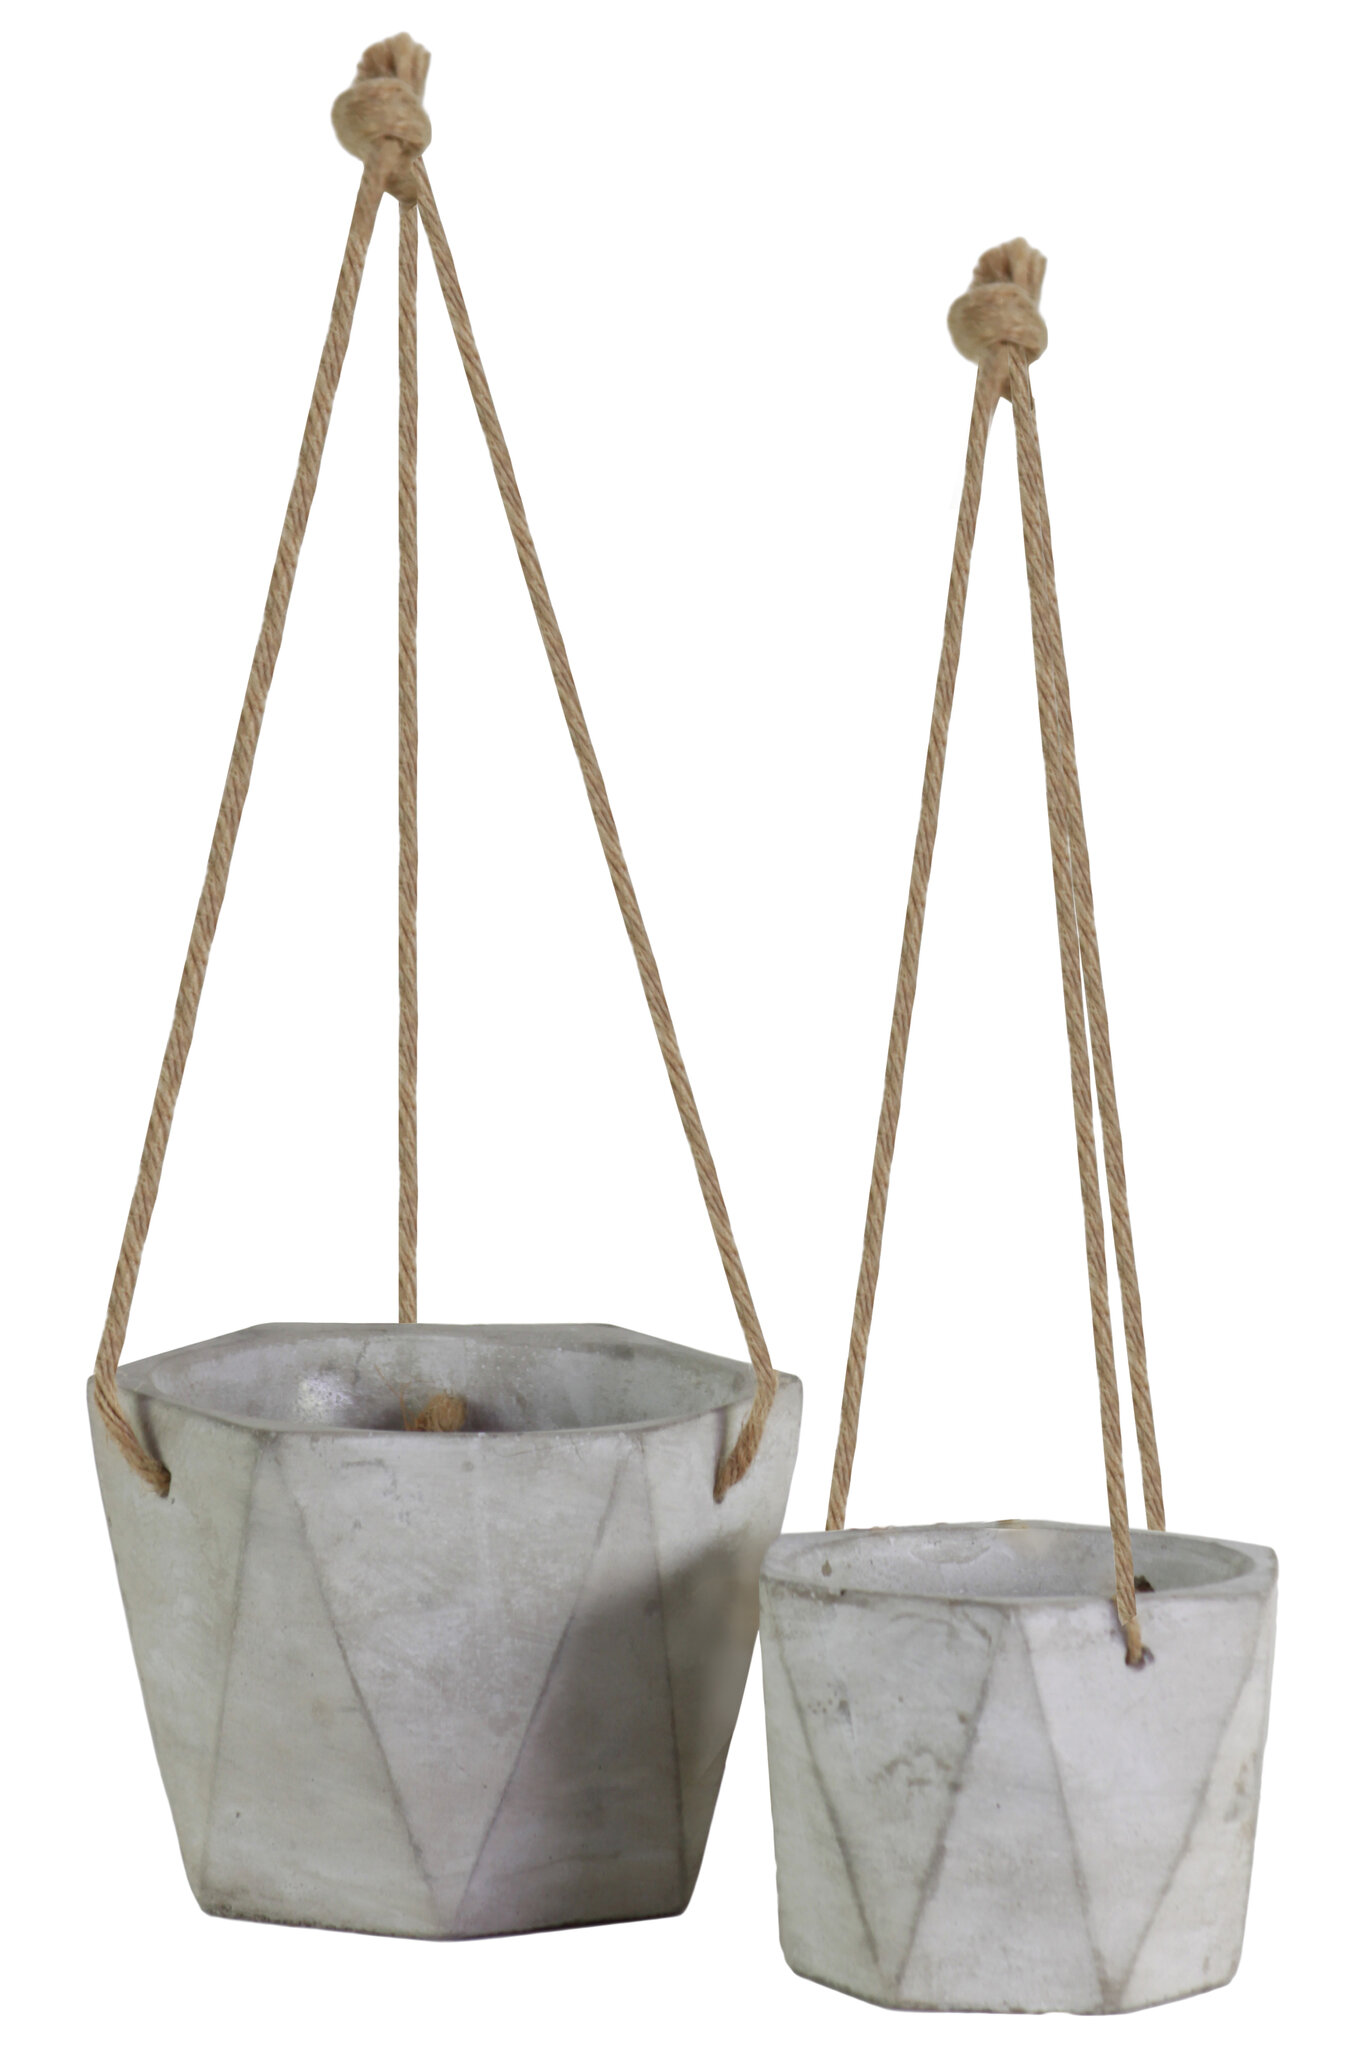 Concrete Narrow Hanging Planters You Ll Love In 2021 Wayfair